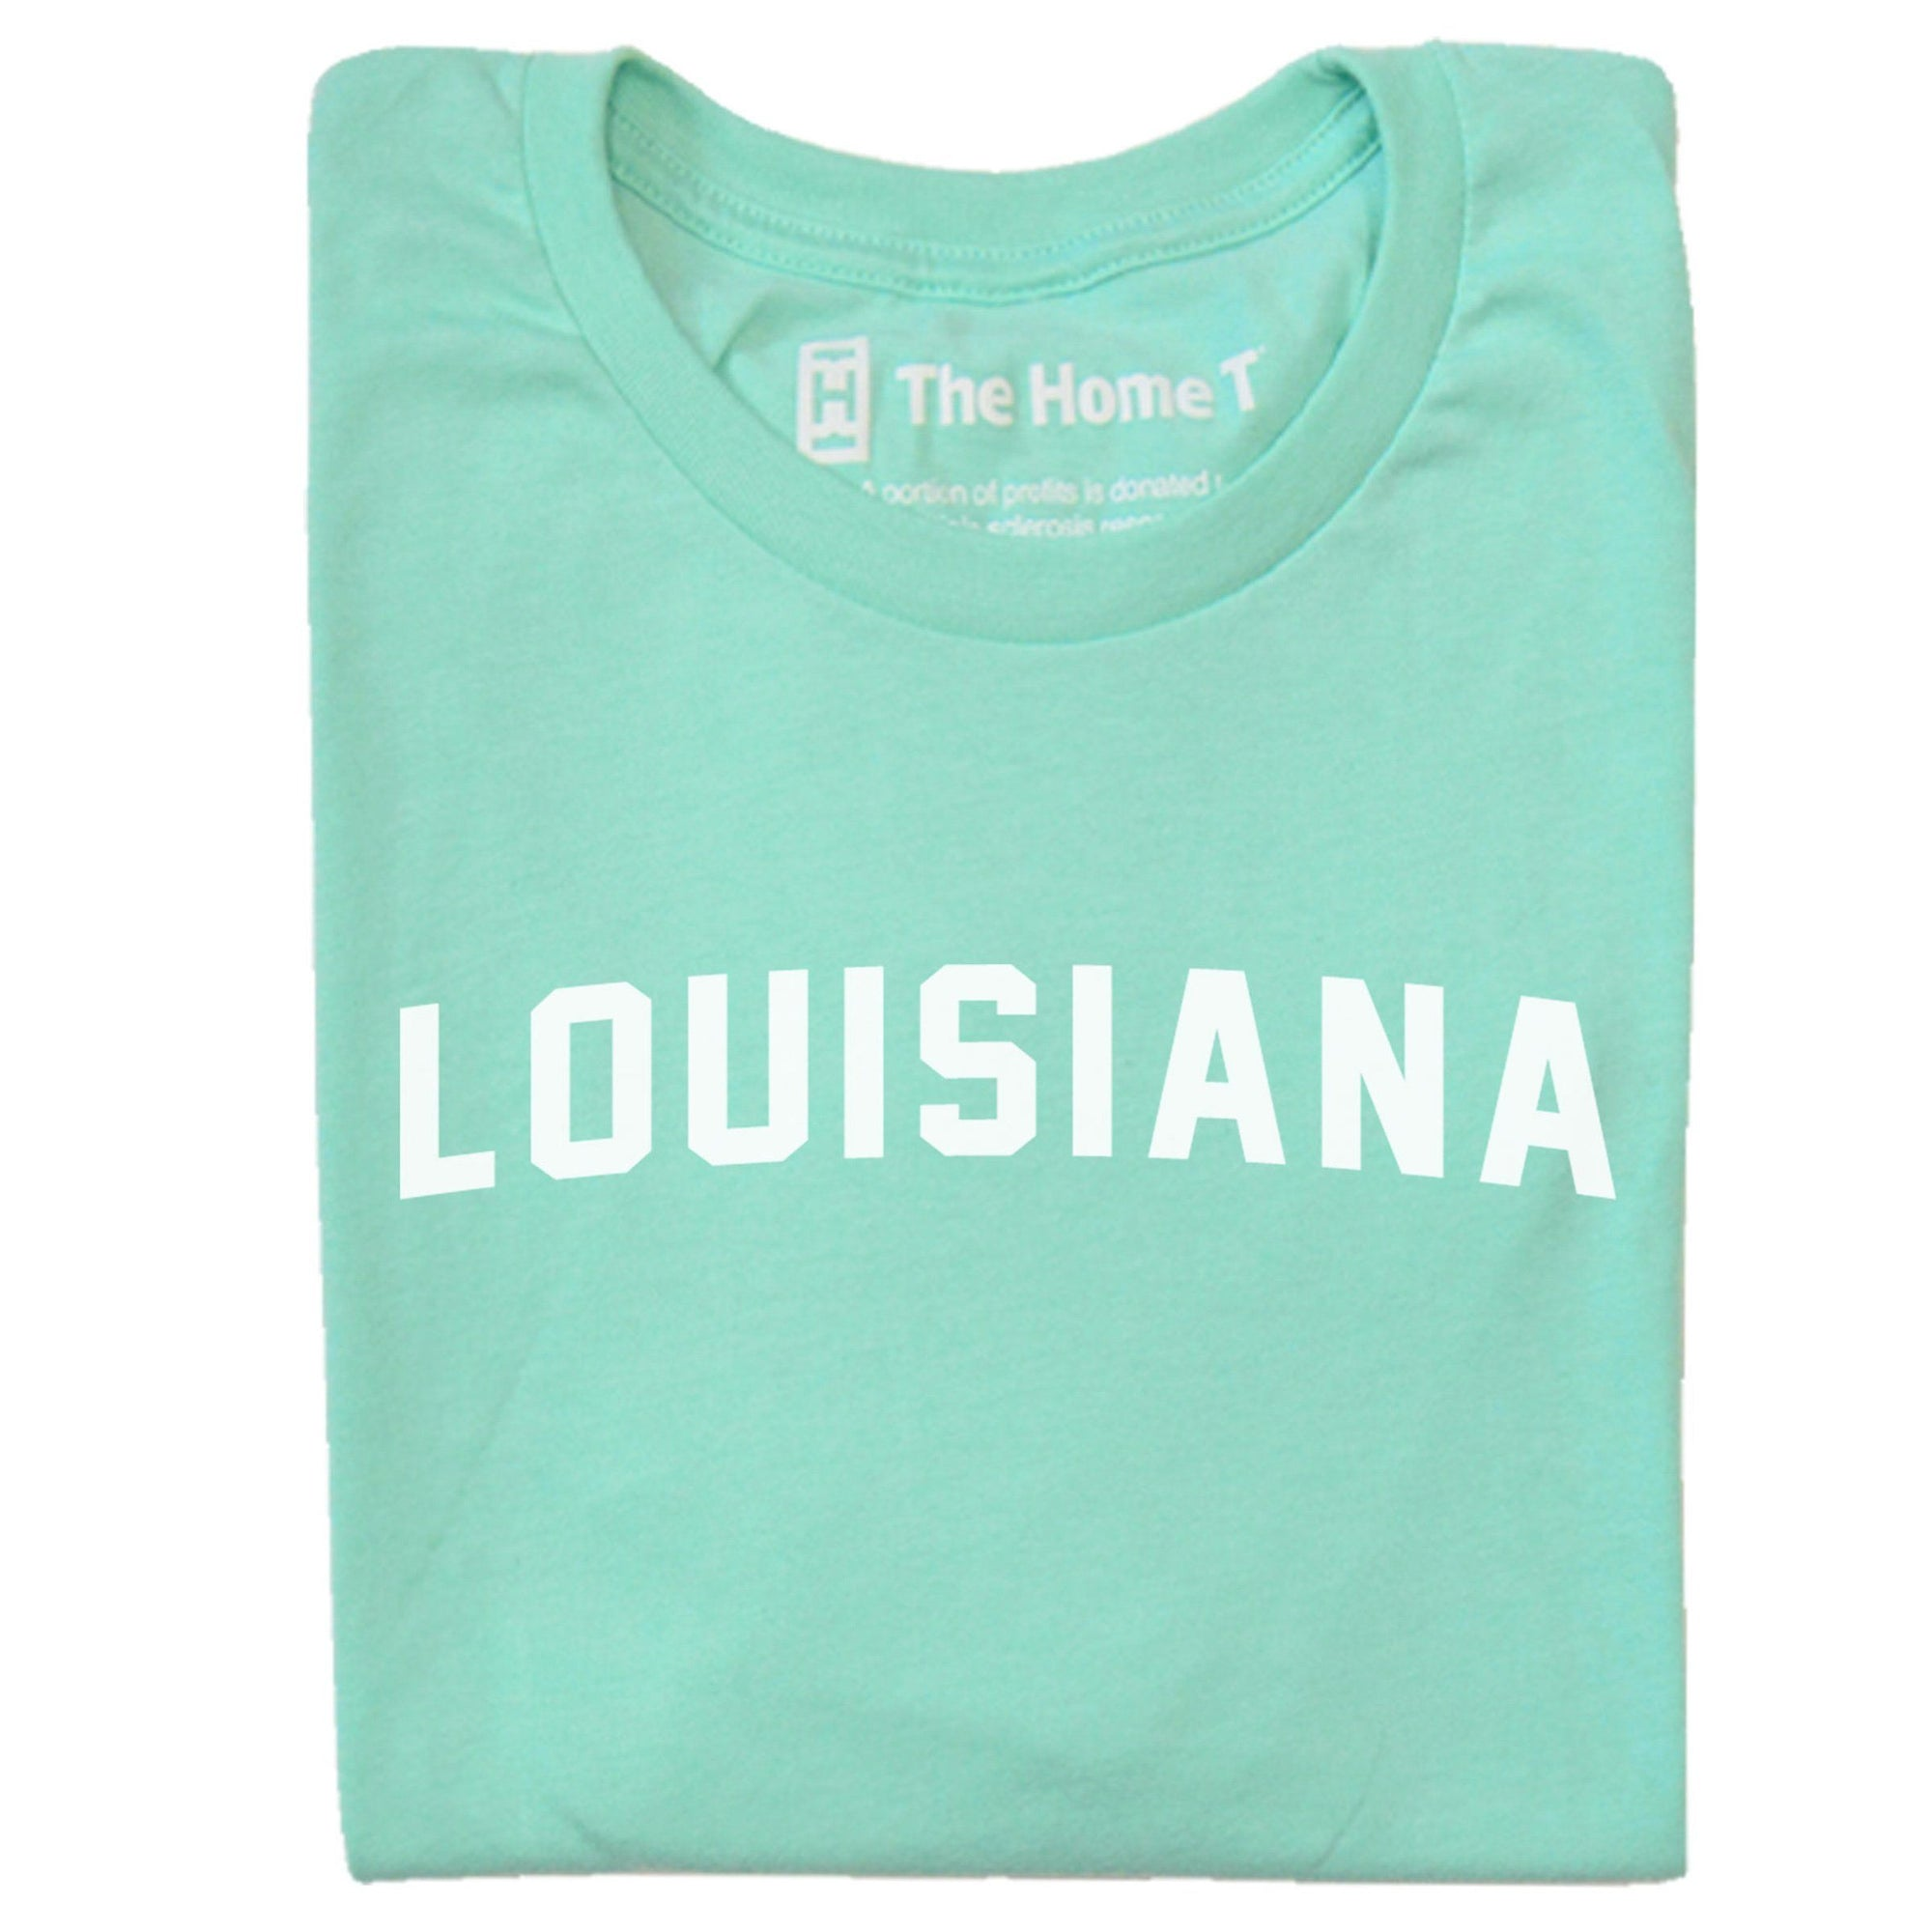 Louisiana Arched The Home T XS Mint